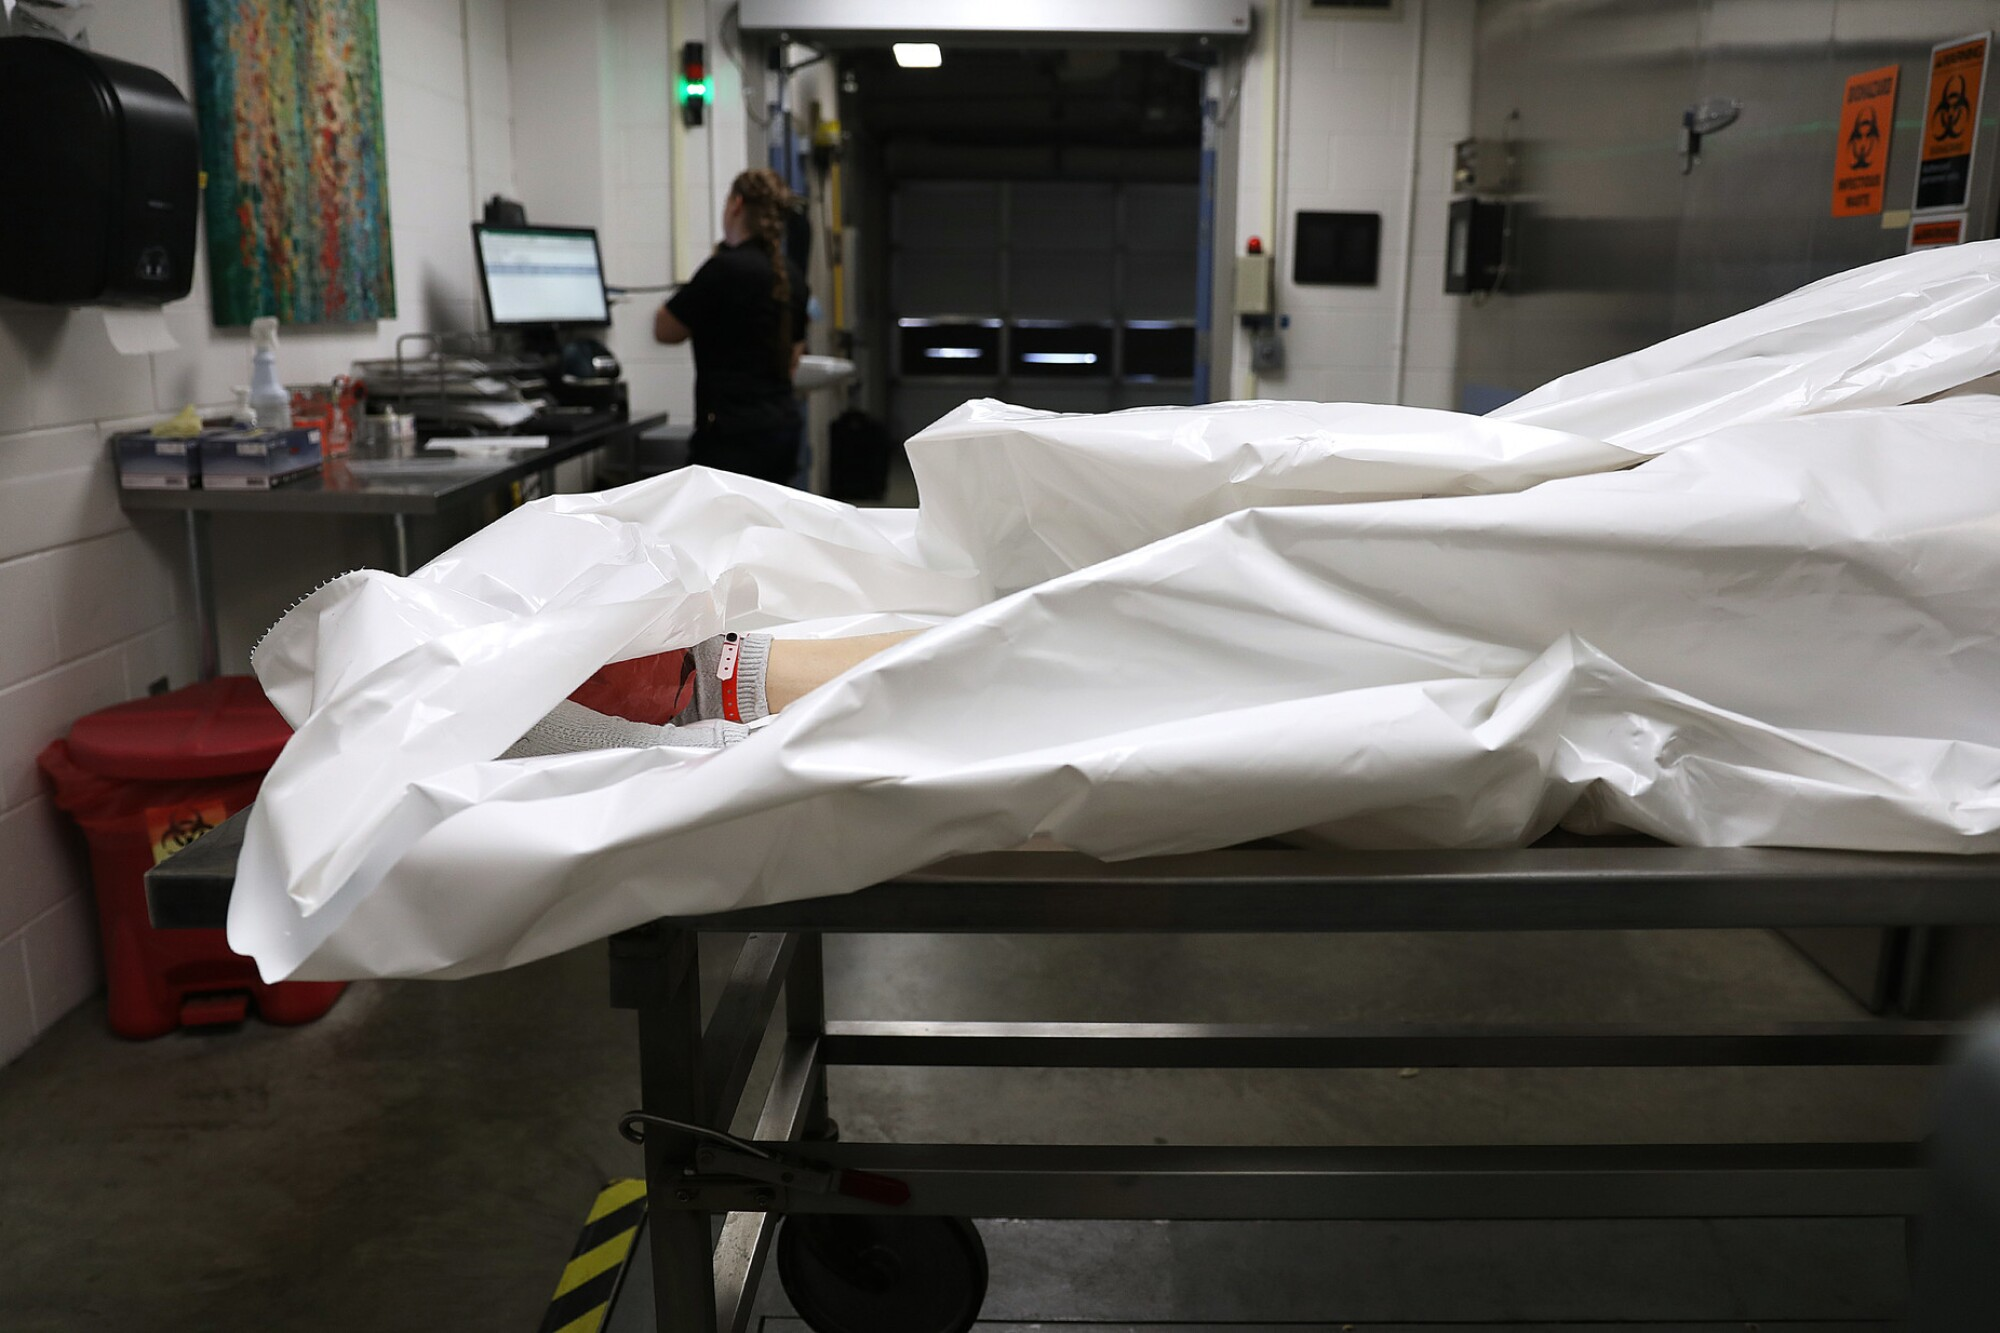 A body at the Pierce County medical examiner's office in Tacoma, Wash.